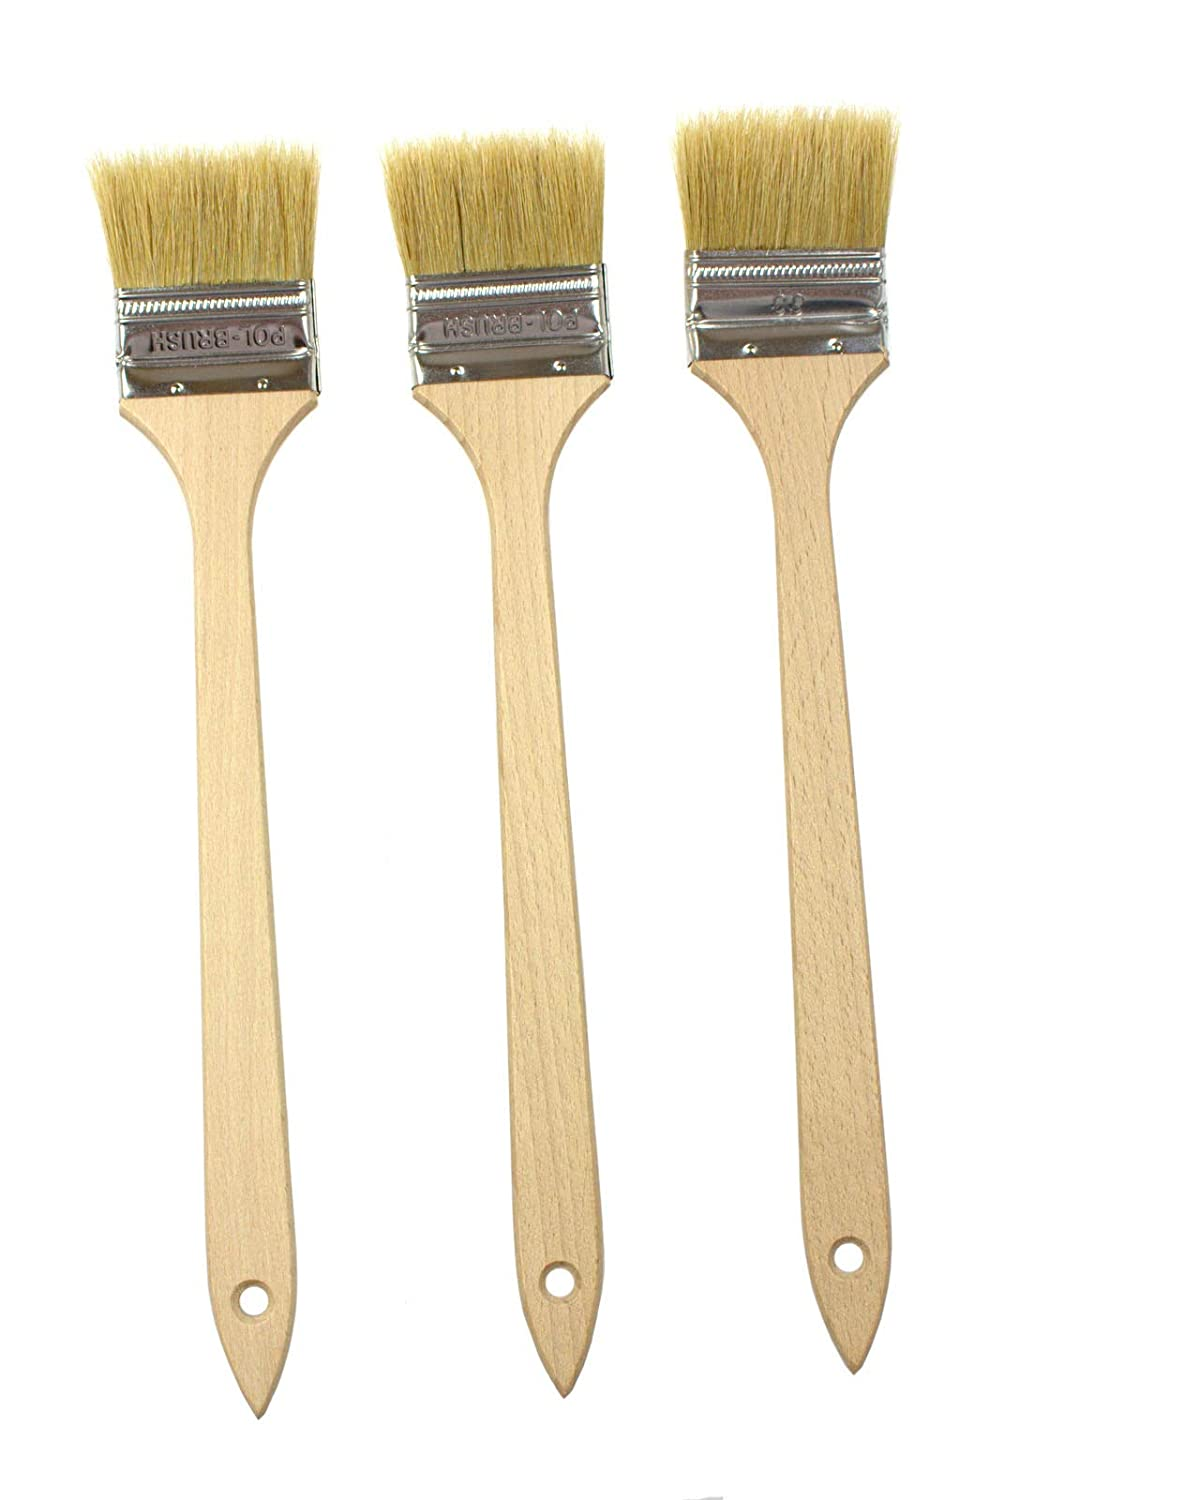 Radiator Paint Brush 3pcs. 2, 5' /63mm 5 /63mm DB Gardentools